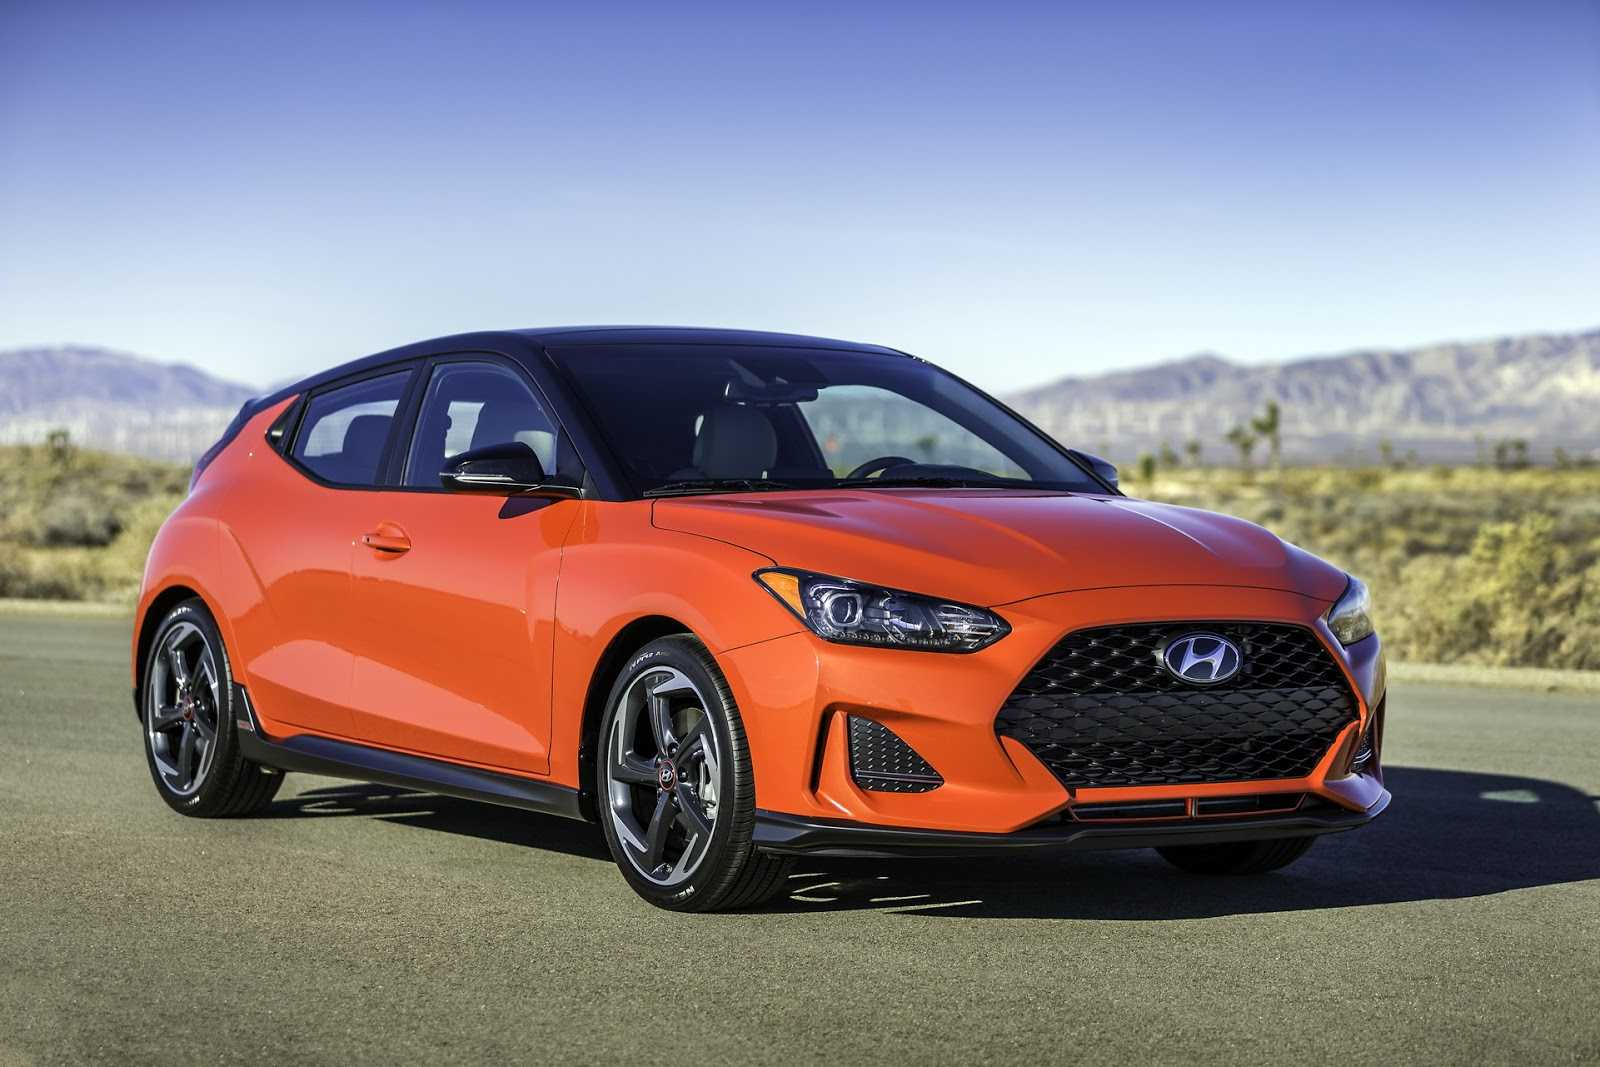 naias 2018 aparece el nuevo hyundai veloster en versiones normal y la deportva n rutamotor. Black Bedroom Furniture Sets. Home Design Ideas